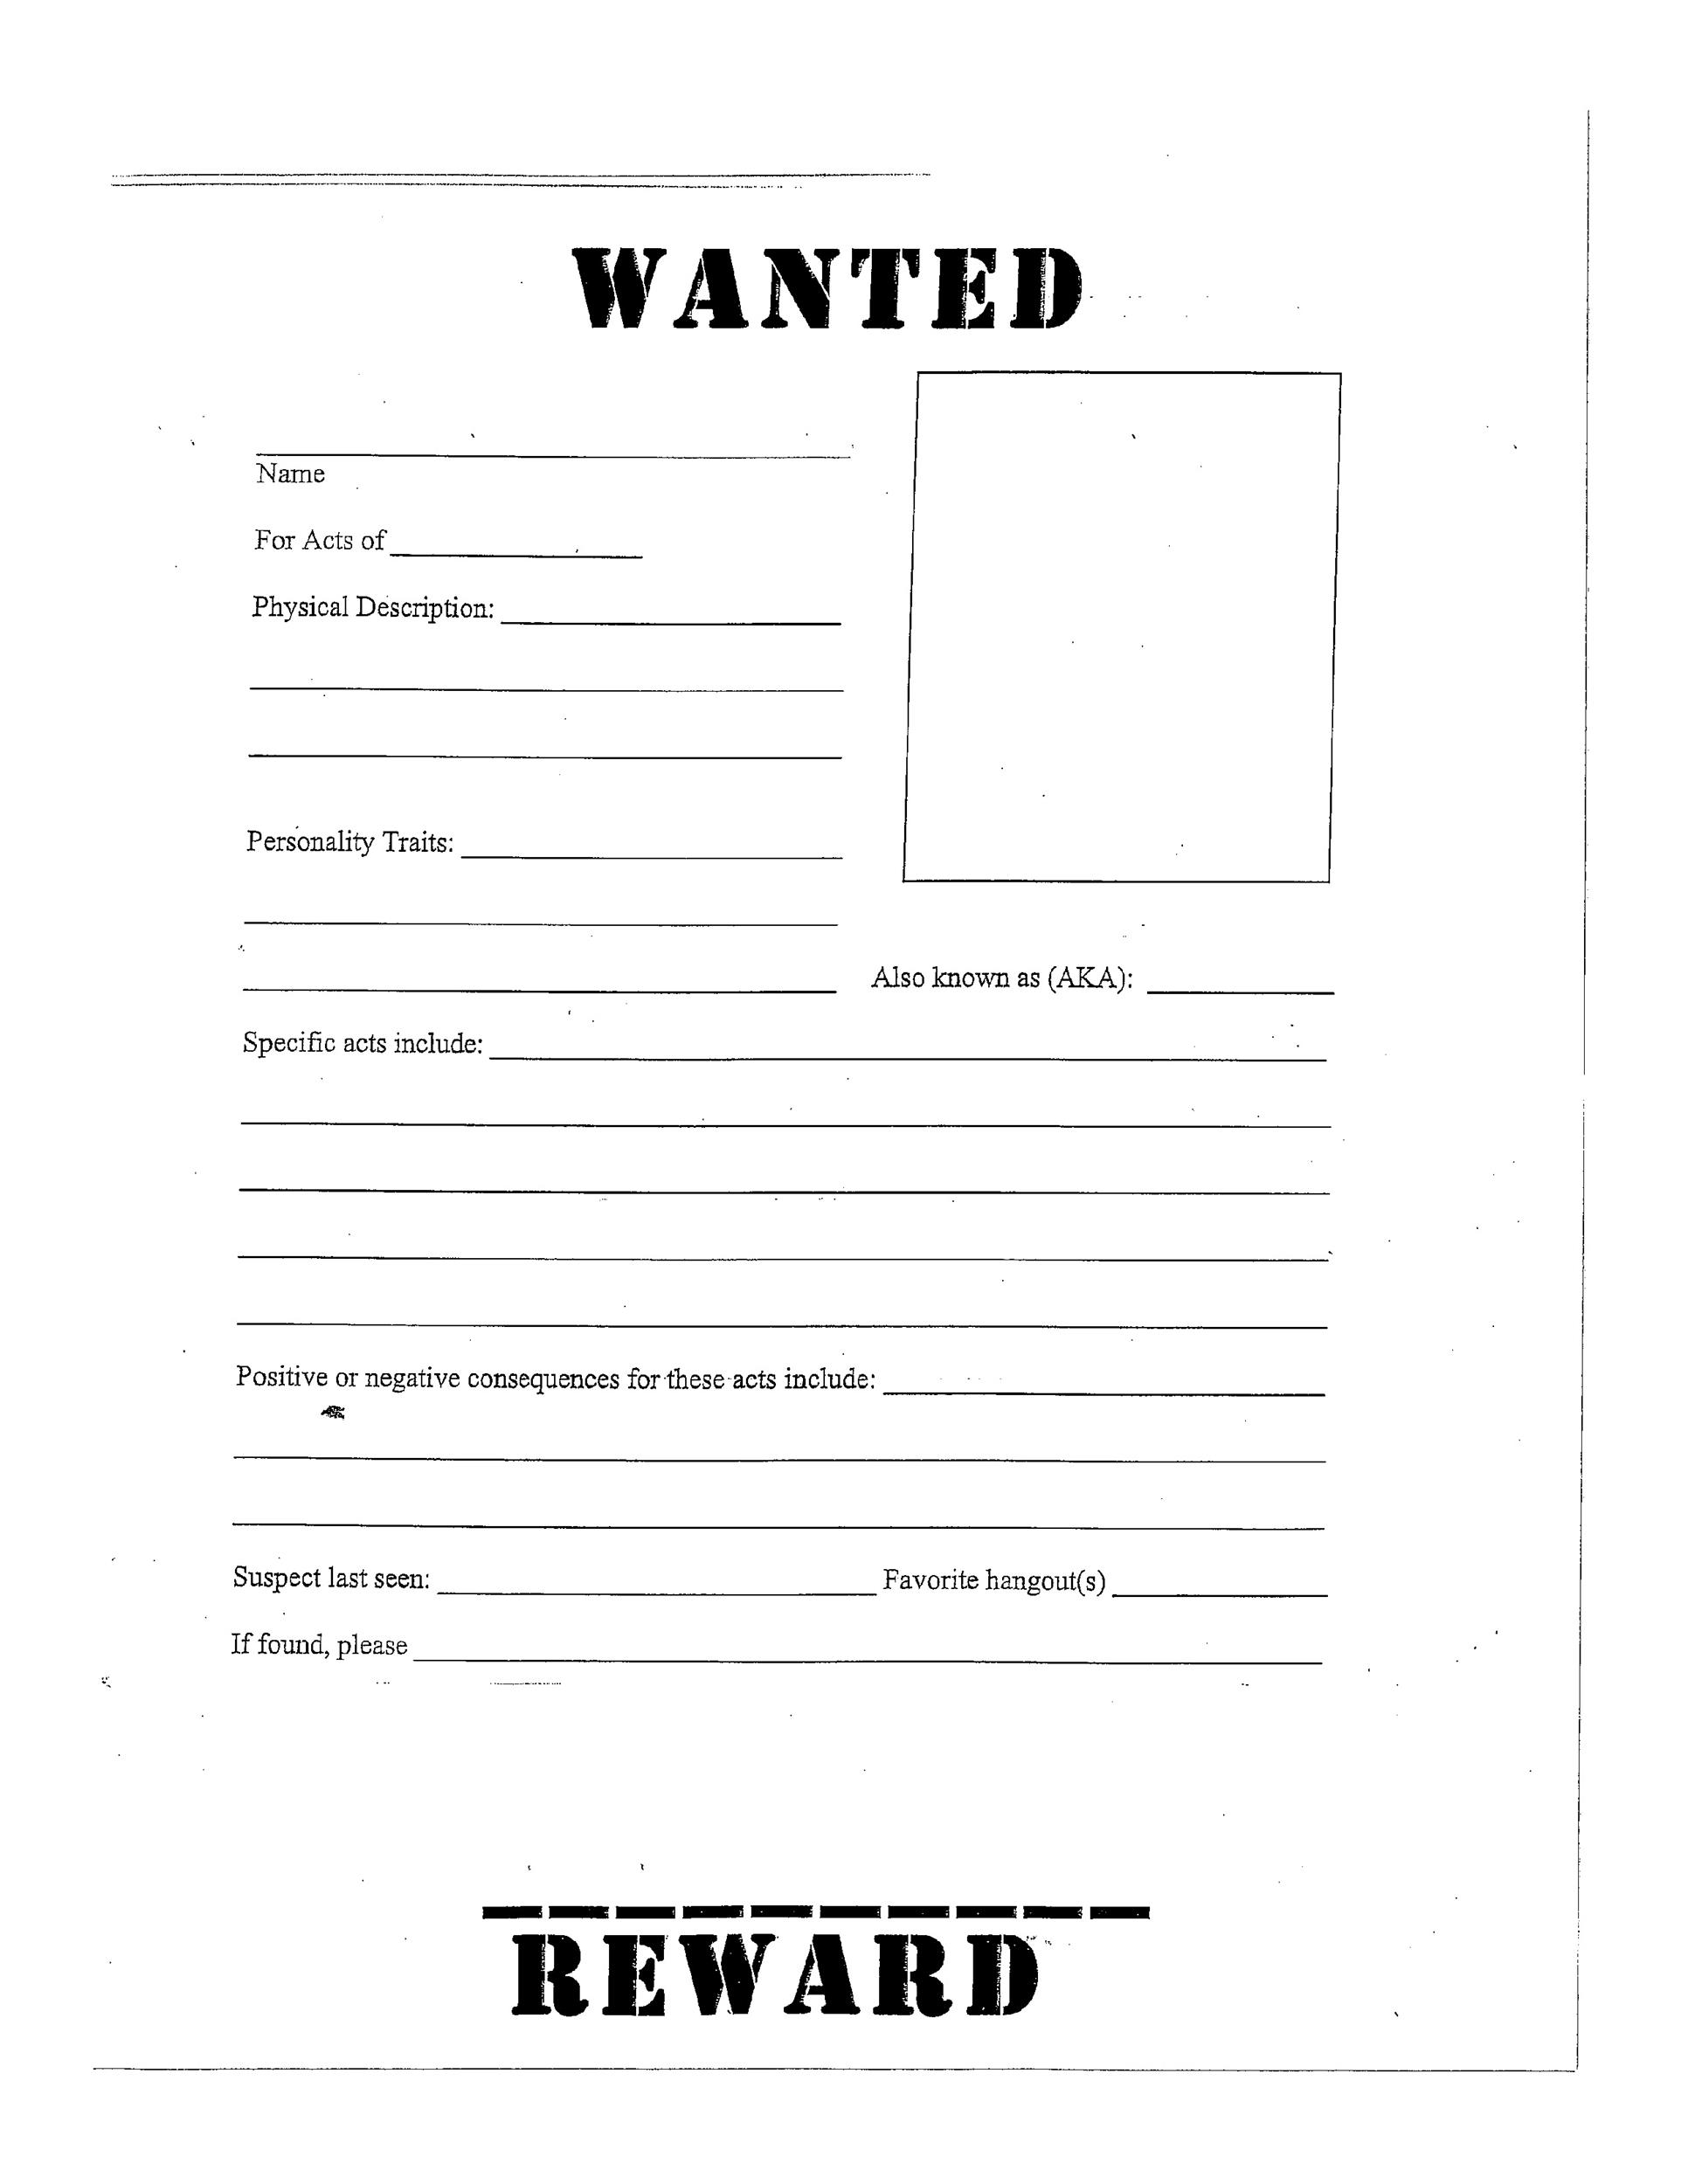 Wanted_Poster_Template_04